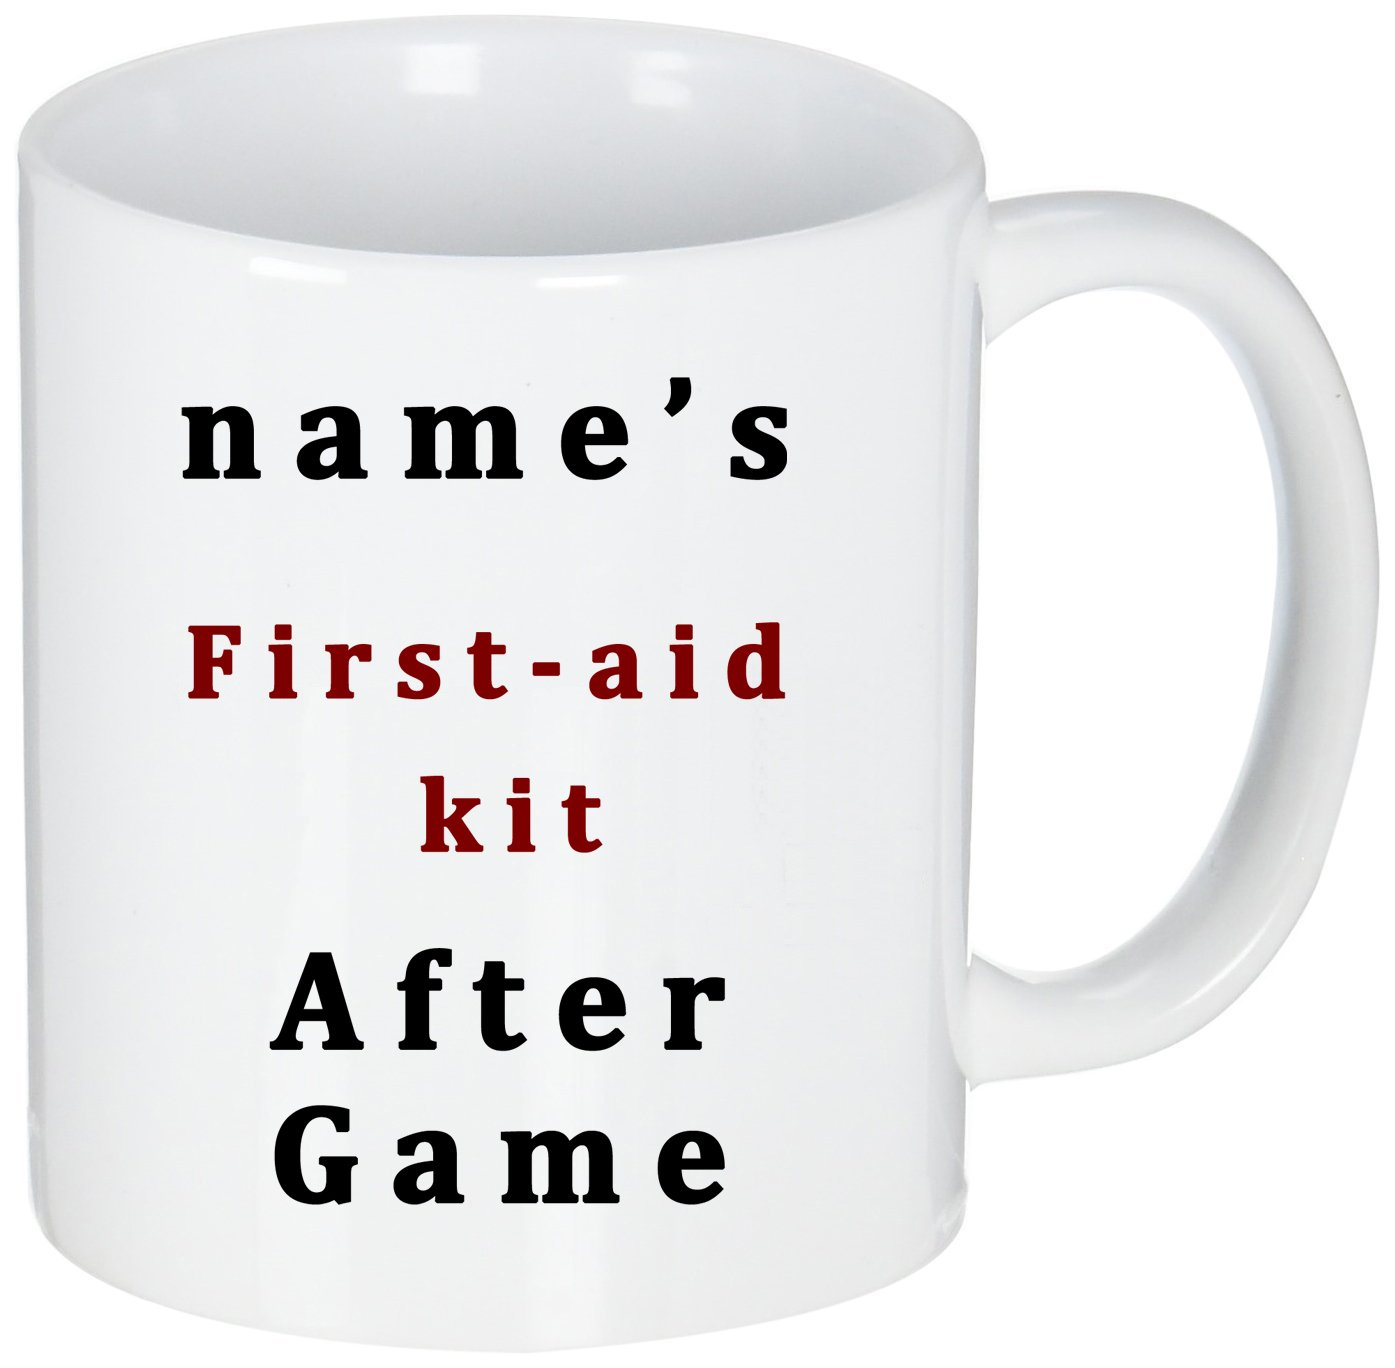 Personalized Funny Mugs,Humor Quotes My First-aid Kit After Game,Gift For Friends Who Love Play Games,First Coffee After Game,Customized Coffee Mugs White 11 OZ